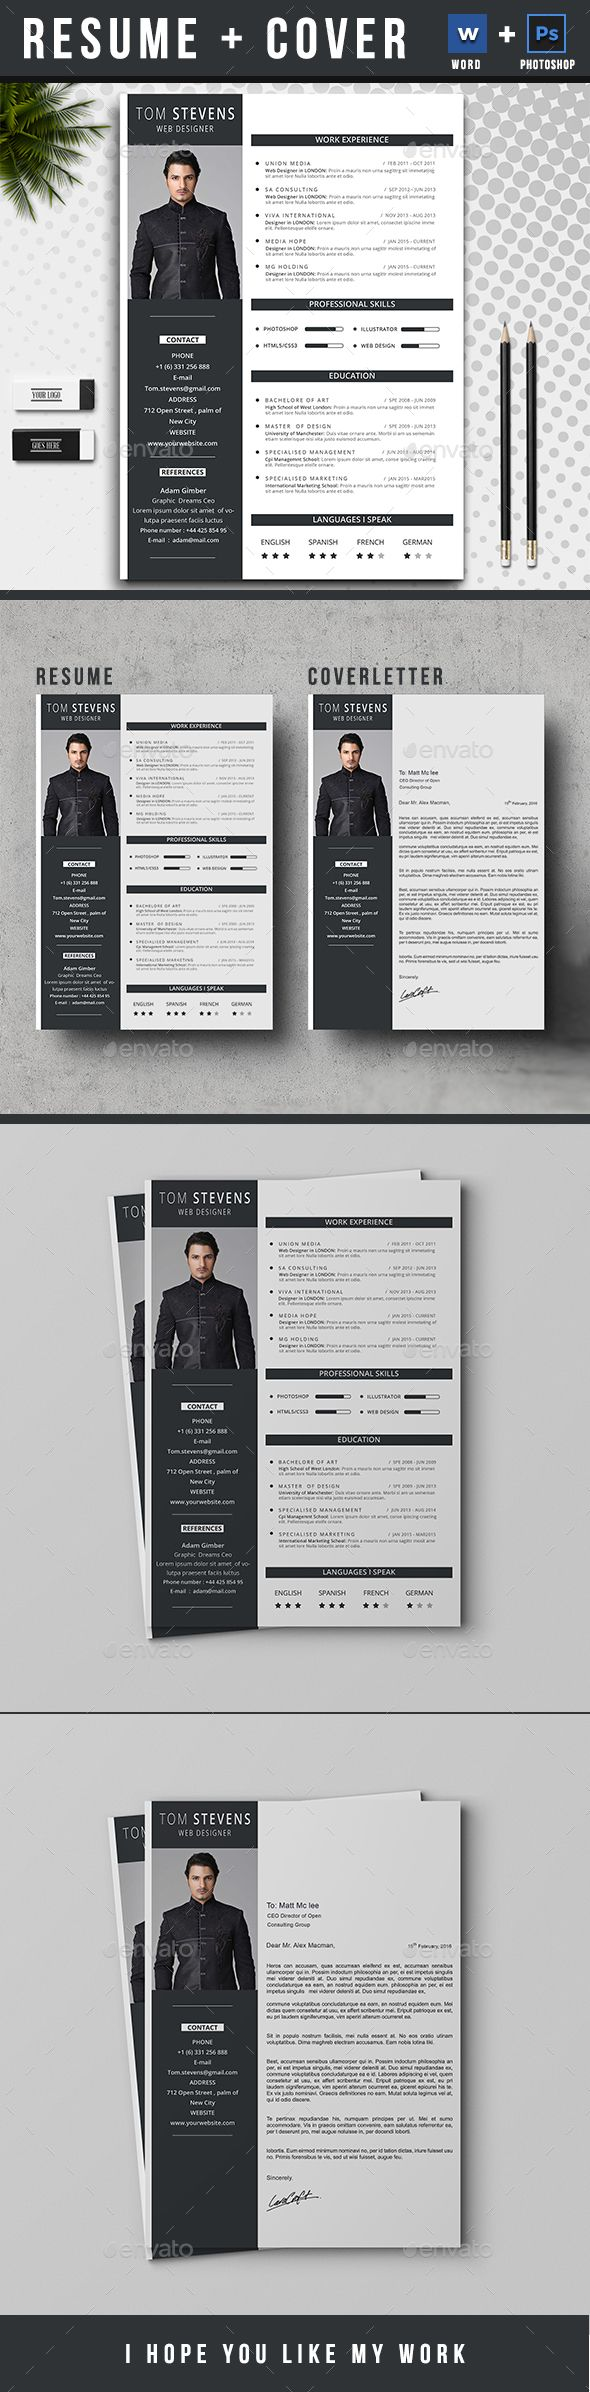 33 Best Resume CV Images On Pinterest